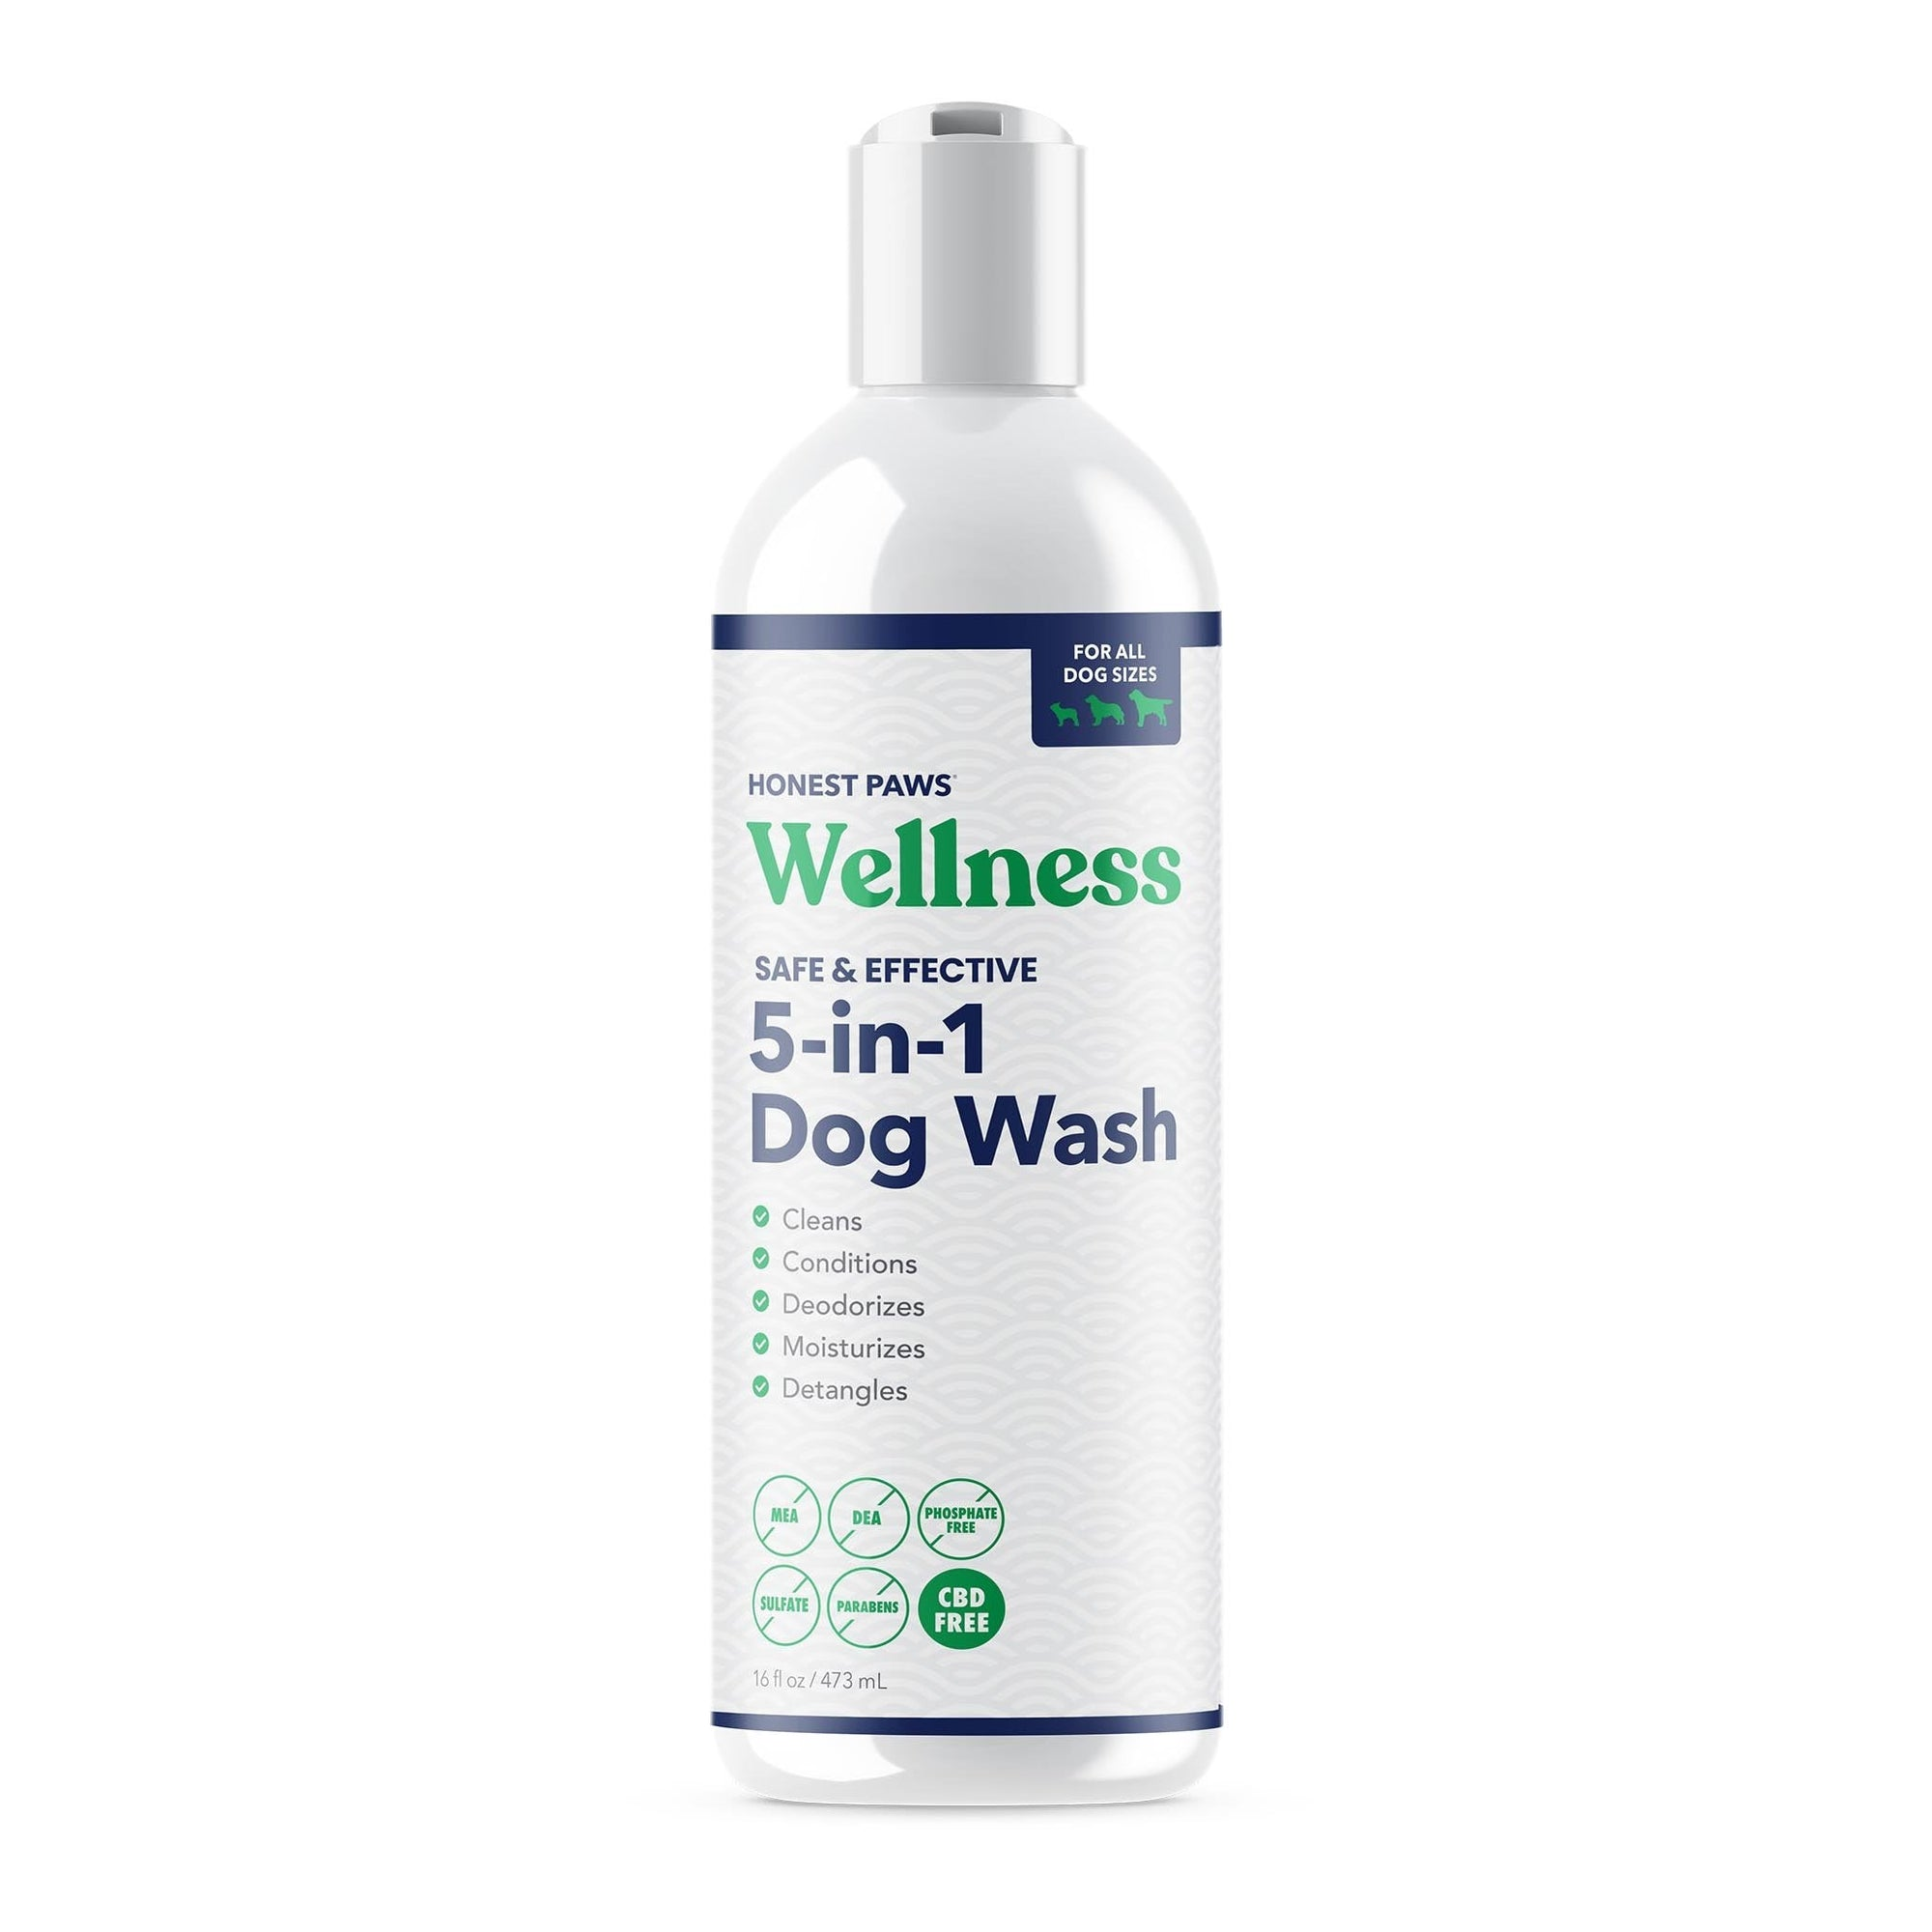 5-in-1 Dog Wash